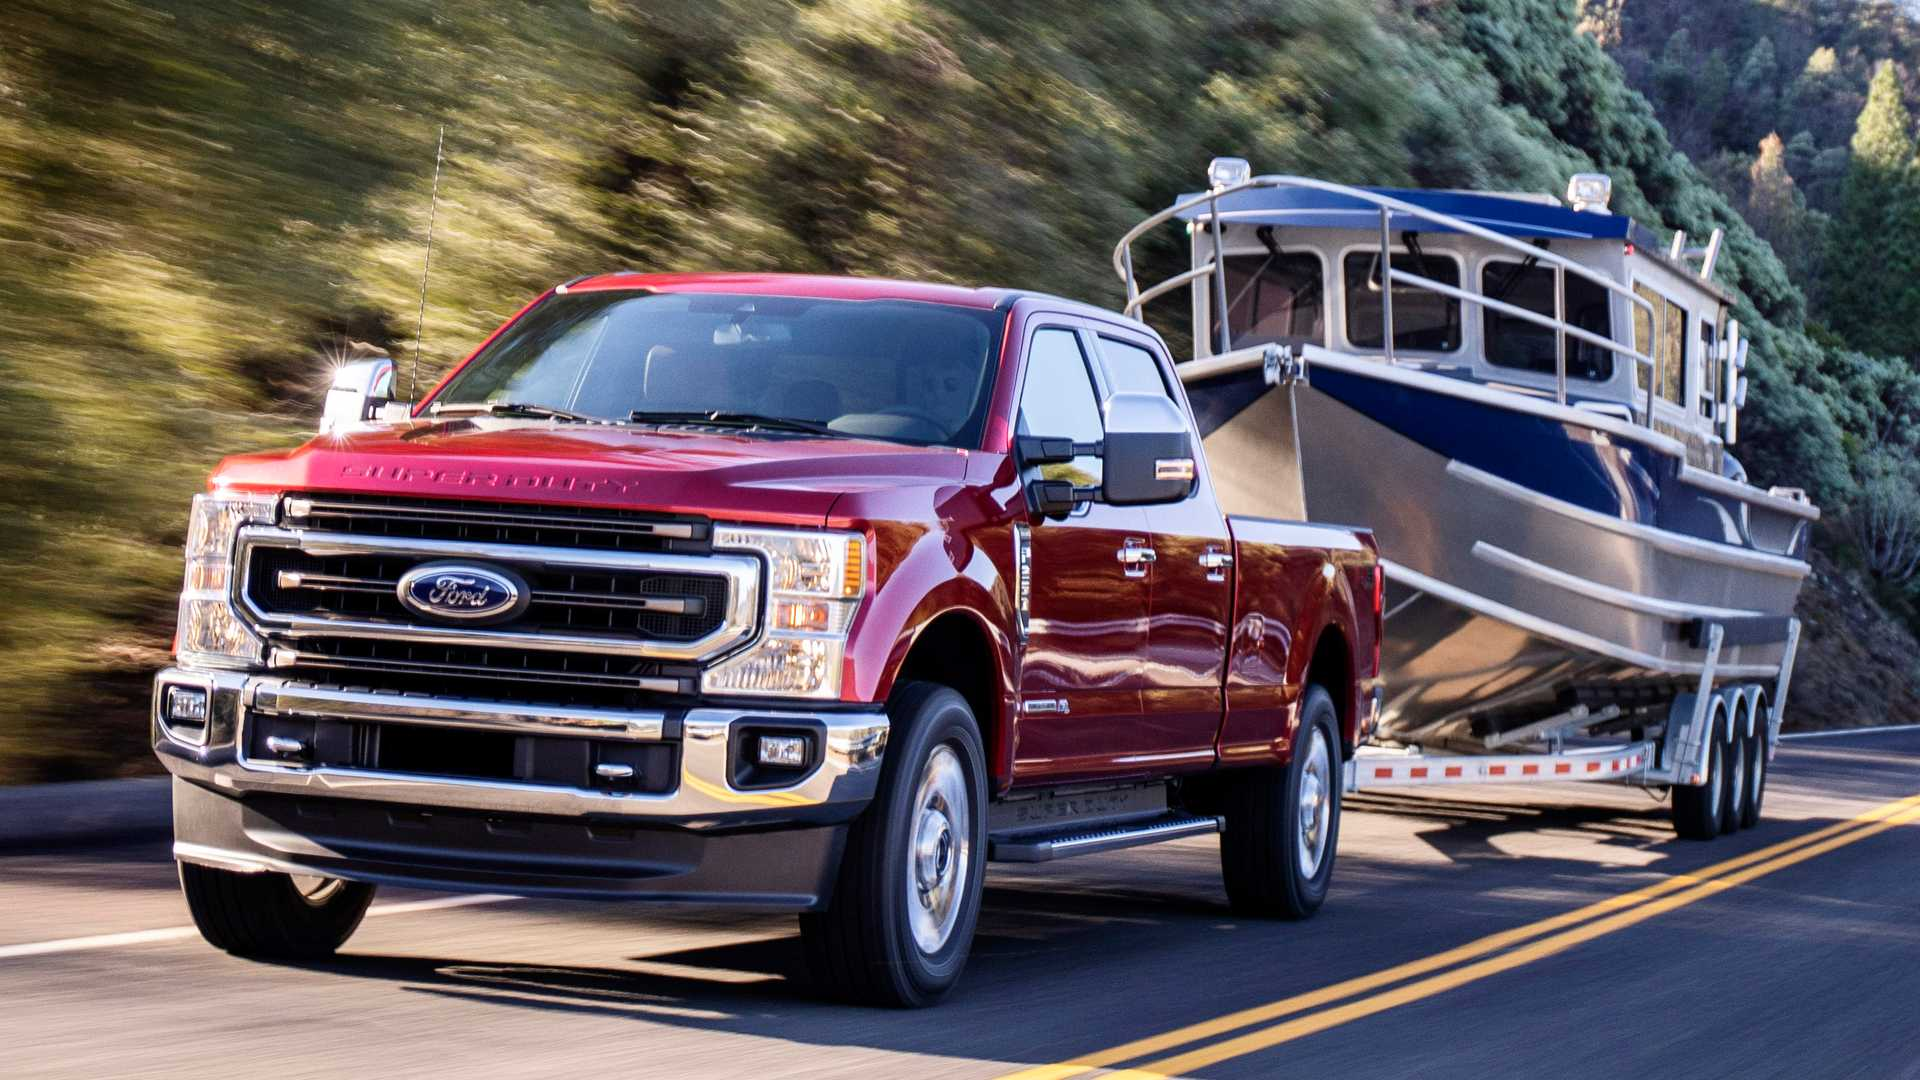 Louisville Truck Show 2020.2020 Ford F Series Super Duty Can Tow Up To 37 000 Pounds